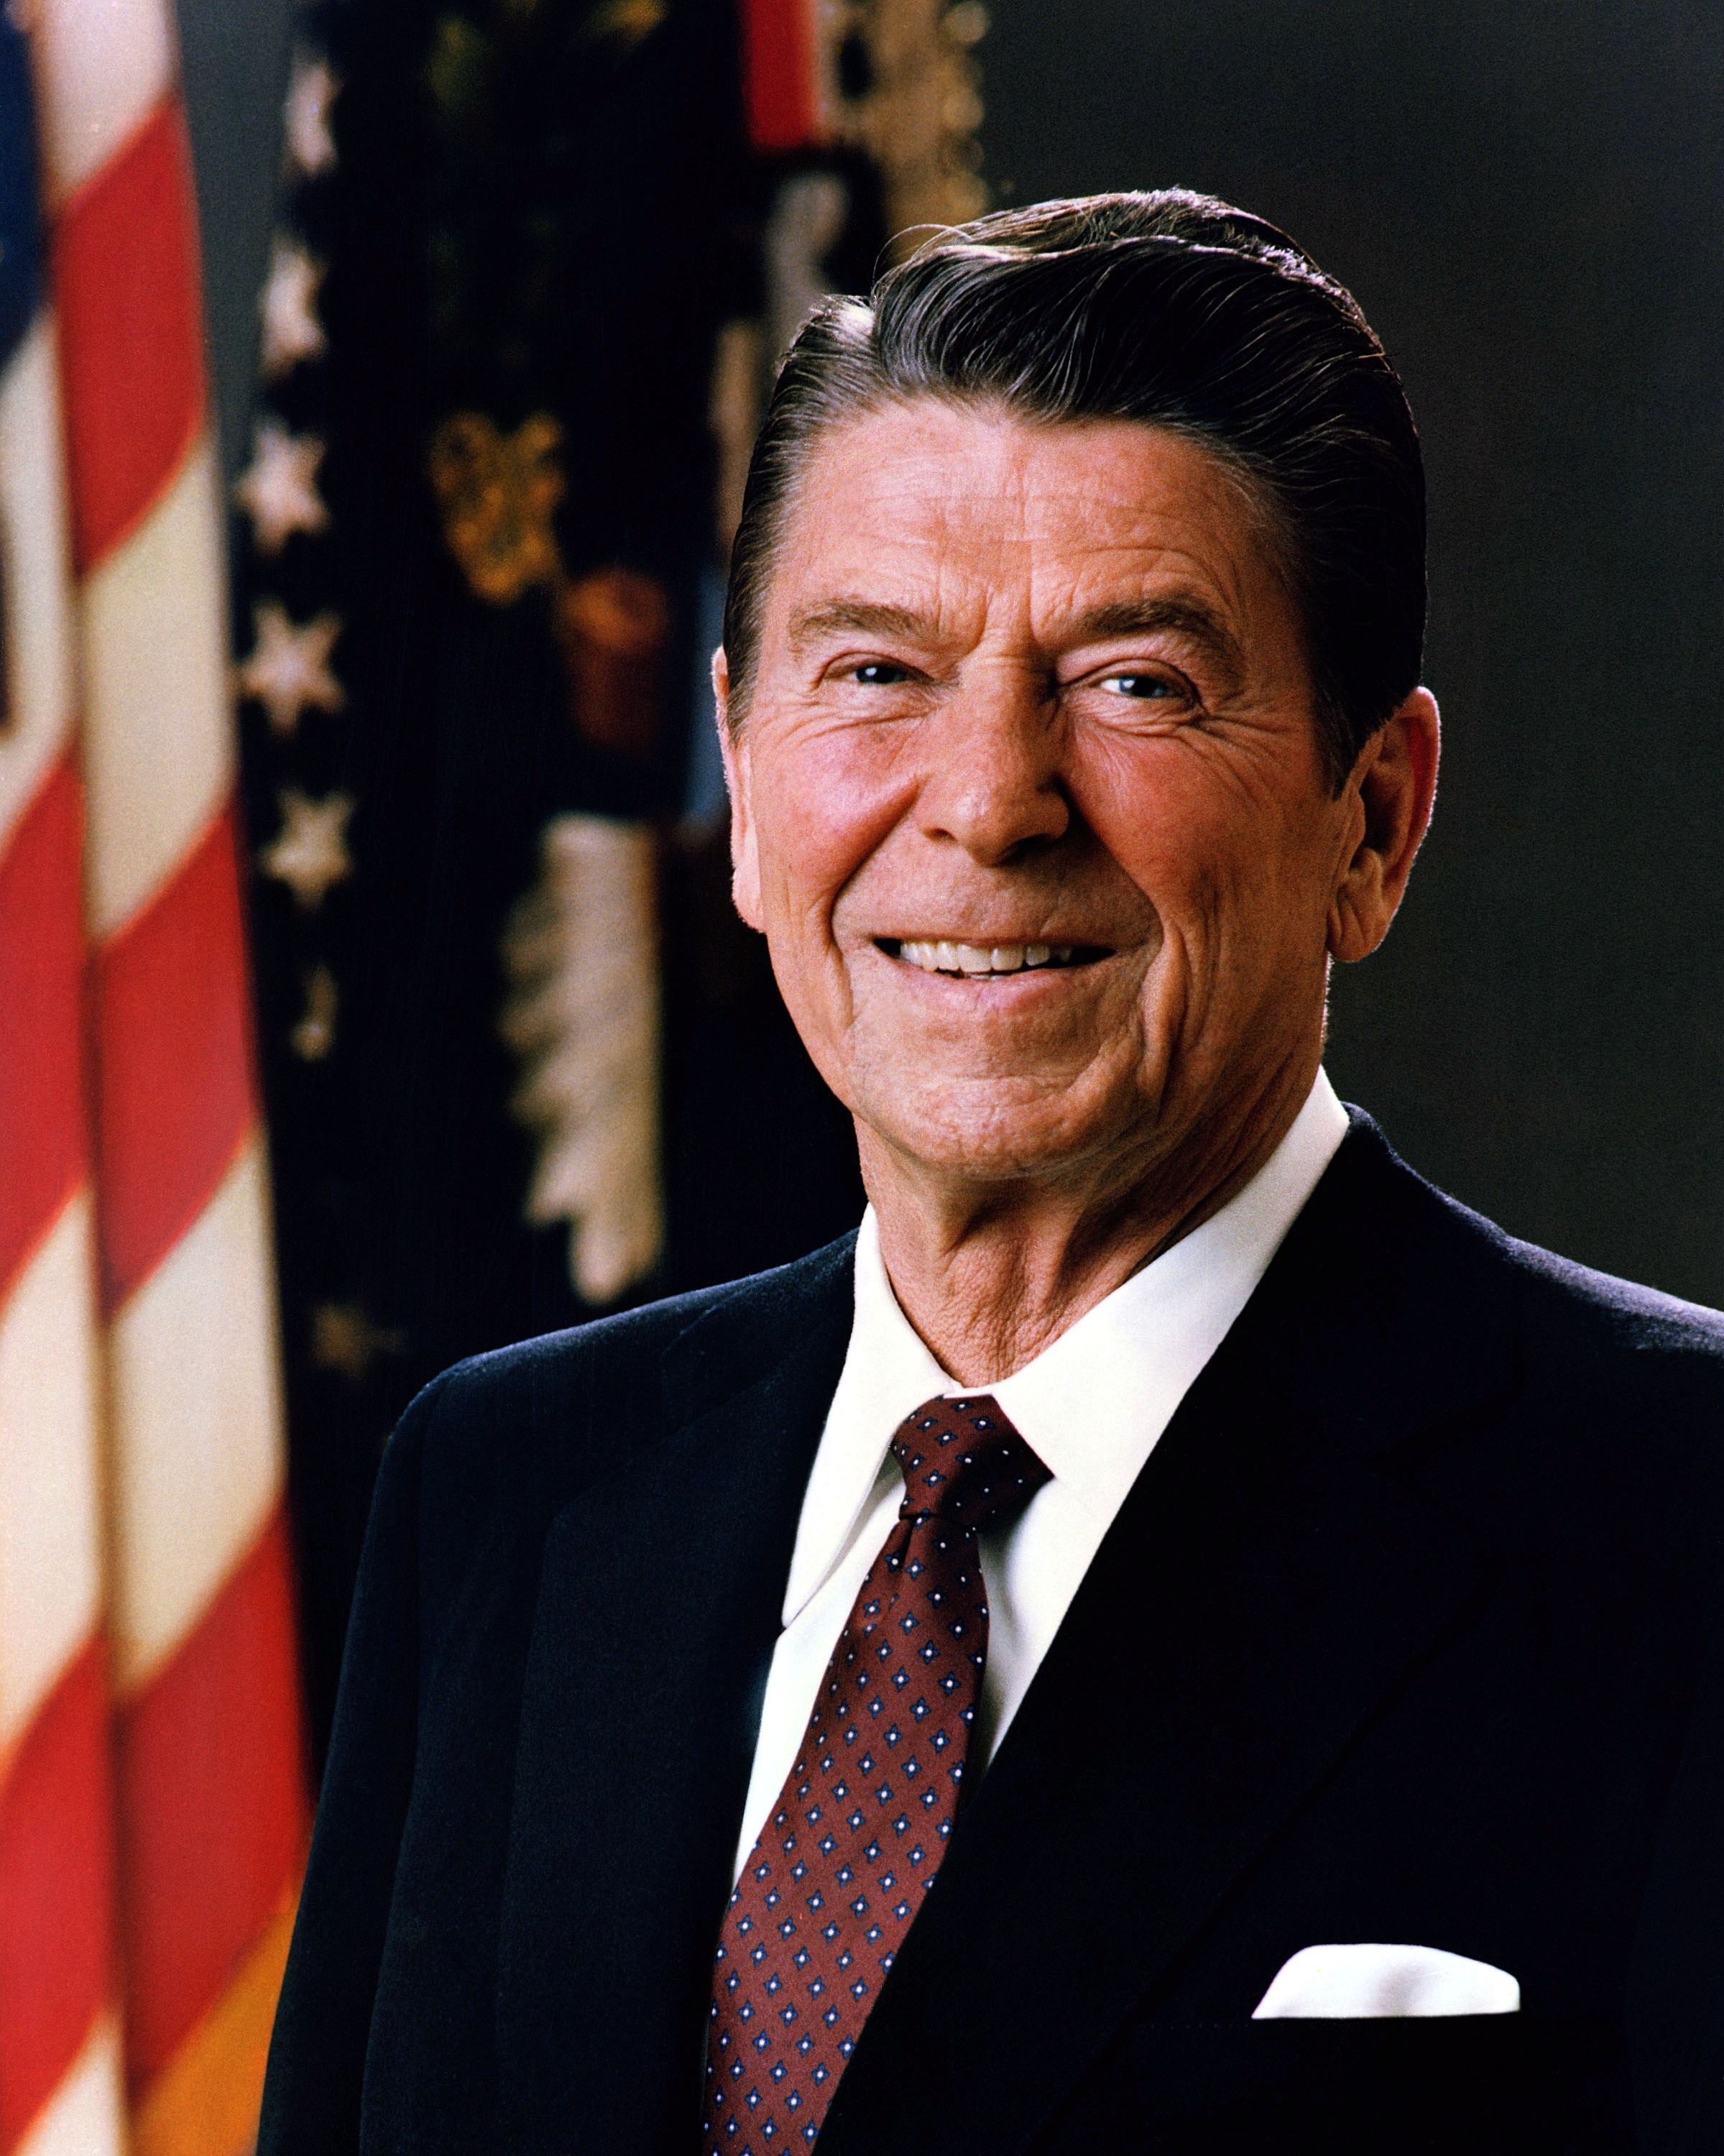 the controversial united states president reagans tax cuts and foreign policy in the 1980s